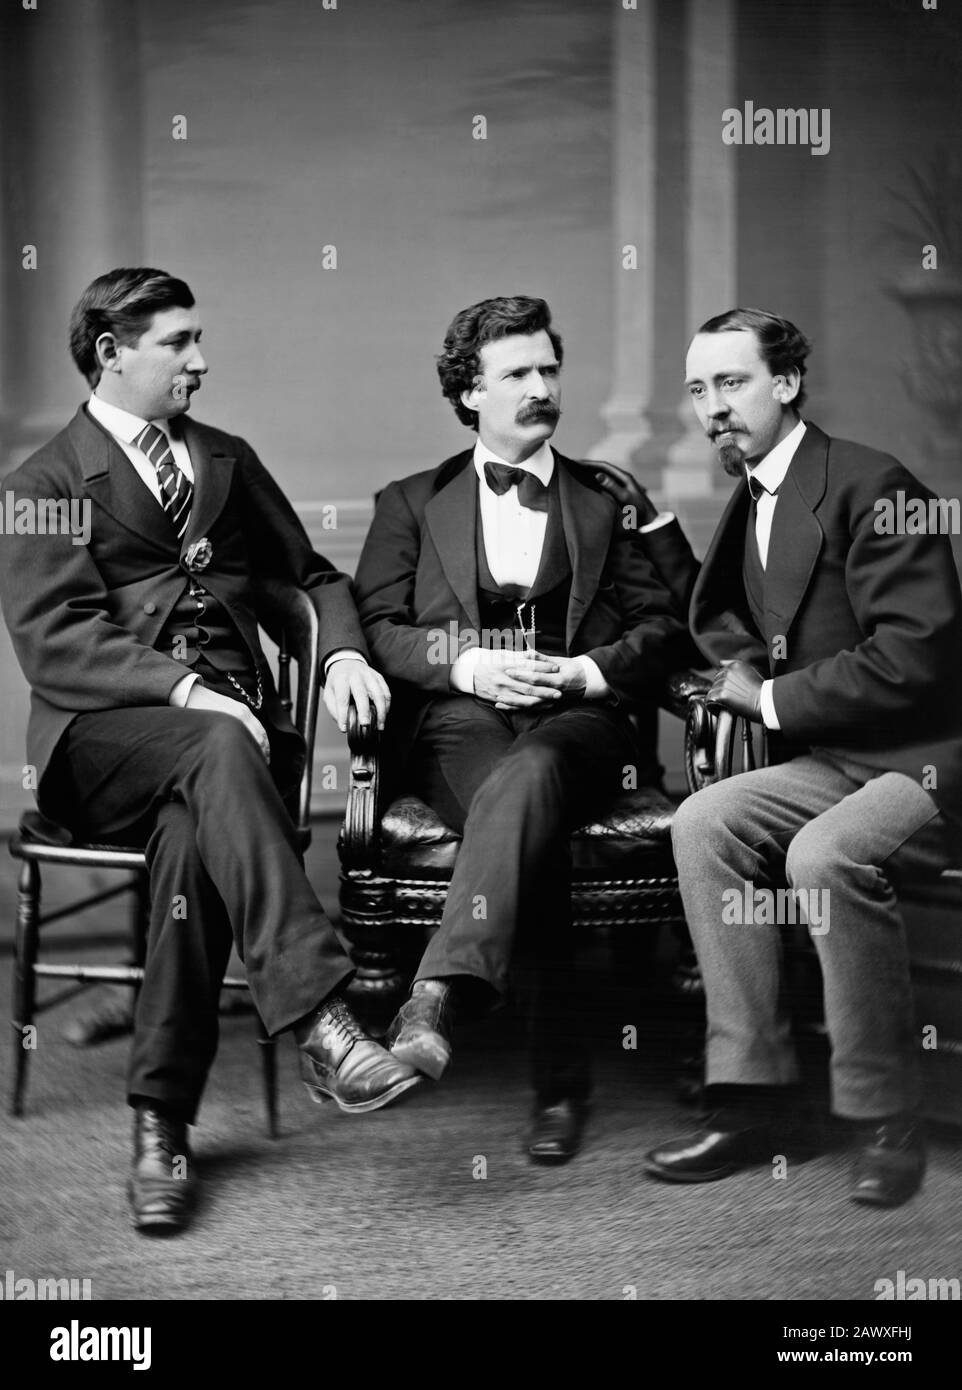 Vintage photo of American writer and humourist Samuel Langhorne Clemens (1835 – 1910), better known by his pen name of Mark Twain. Clemens is seated in the centre with, on the left of the picture, journalist and novelist George Alfred Townsend (1841 – 1914) and, on the right, David Gray (1836 - 1888) of the Buffalo Courier. Photo by Brady - Handy taken in Washington DC in 1871. Stock Photo